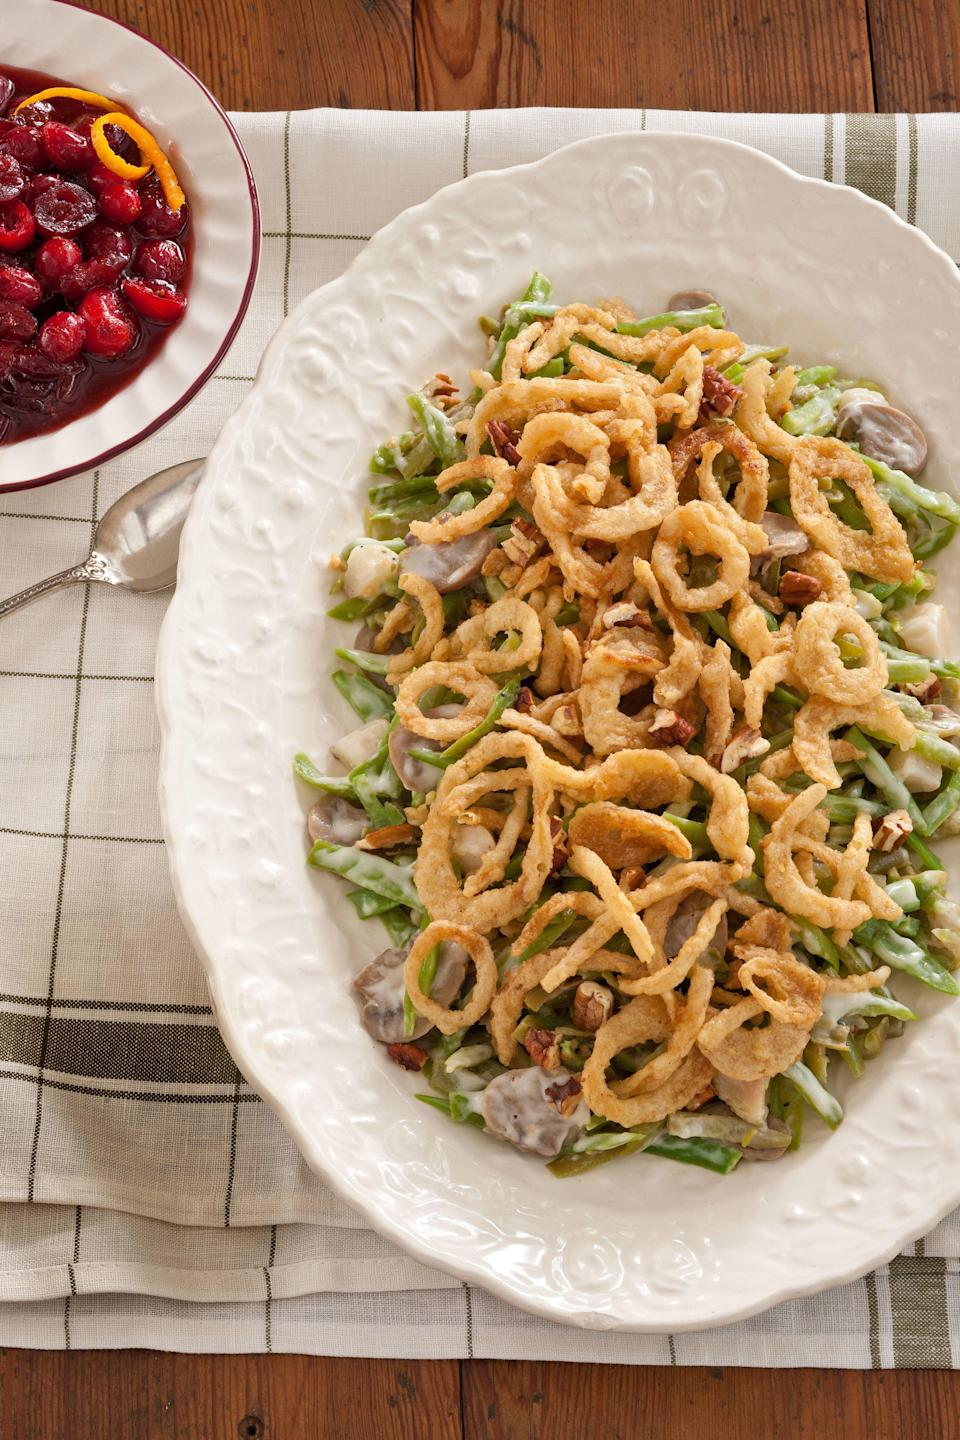 """<p><strong>Recipe: <a href=""""http://www.myrecipes.com/recipe/green-bean-casserole-0"""" rel=""""nofollow noopener"""" target=""""_blank"""" data-ylk=""""slk:Green Bean Casserole"""" class=""""link rapid-noclick-resp"""">Green Bean Casserole</a></strong></p> <p>Go beyond the standard """"recipe on the can"""" casserole by adding Alfredo sauce instead of cream of mushroom soup, water chestnuts, Parmesan cheese, and toasted pecans.</p>"""